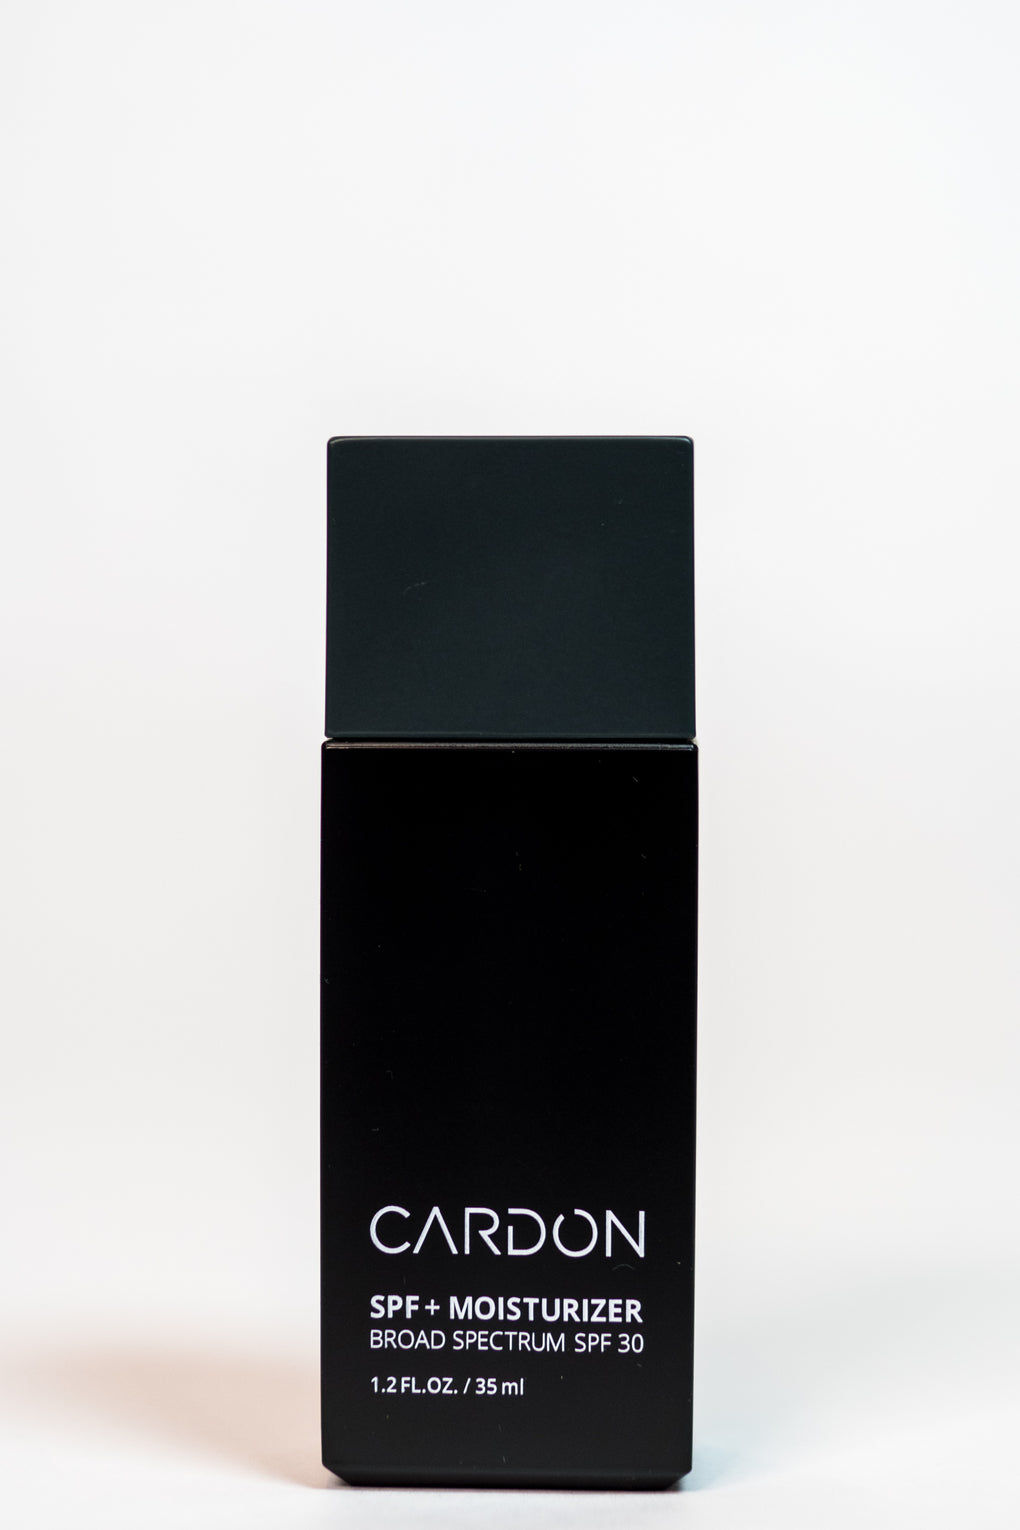 Cardon SPF30 Moisturizer with Sunscreen at Consigliere